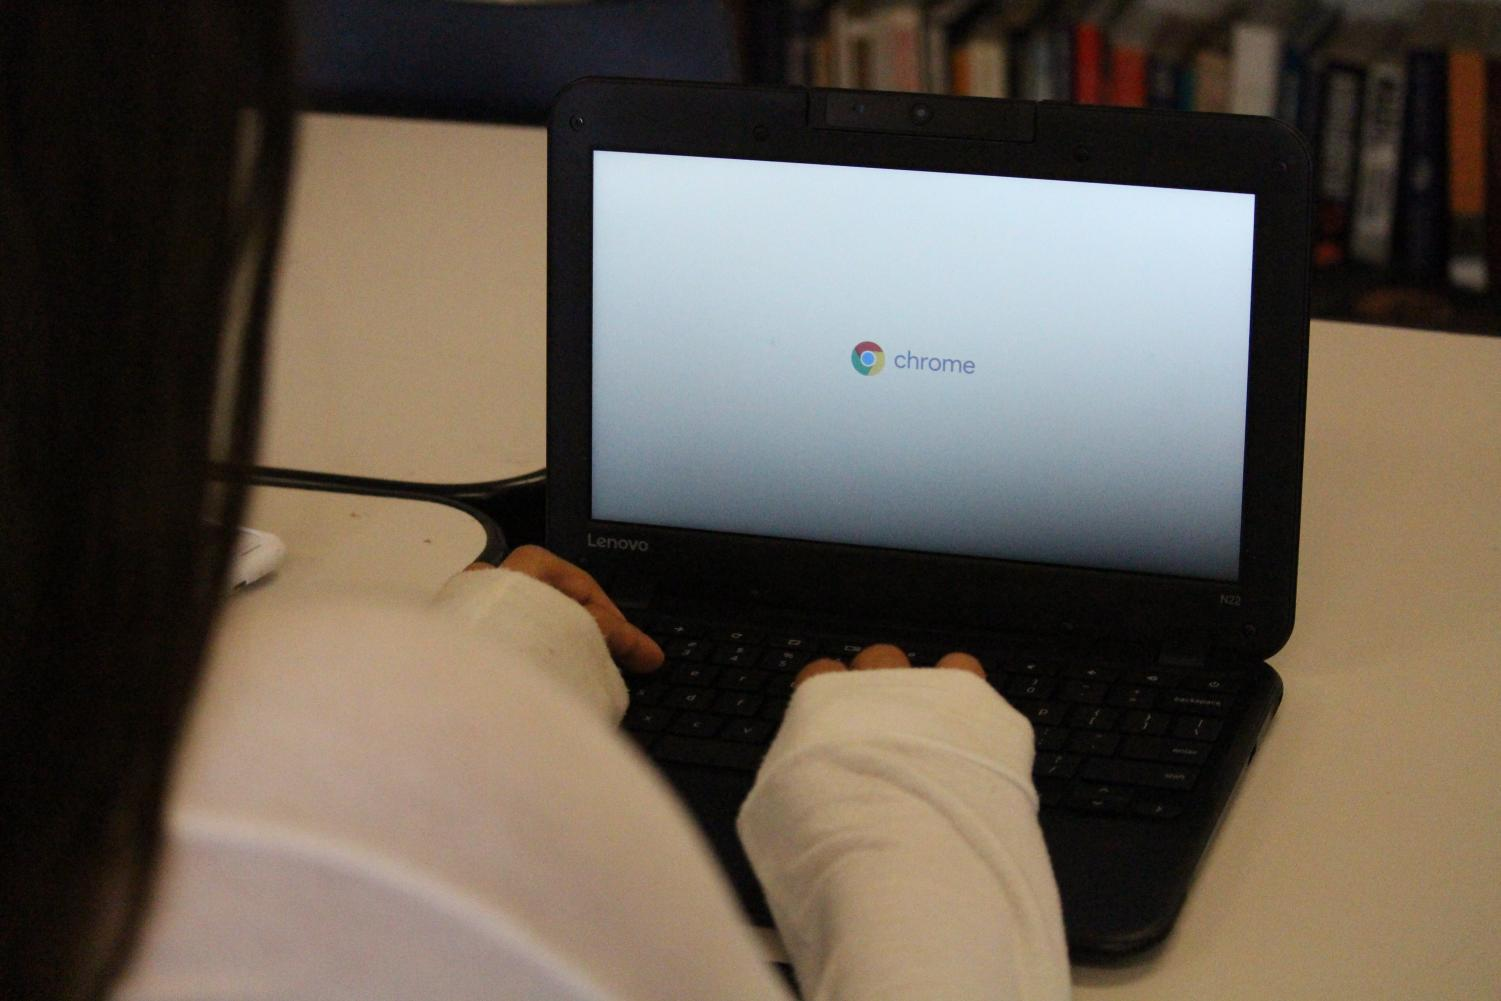 CHS students were issued individual Chromebooks this year as part of a new one-to-one computer policy implemented by the district.